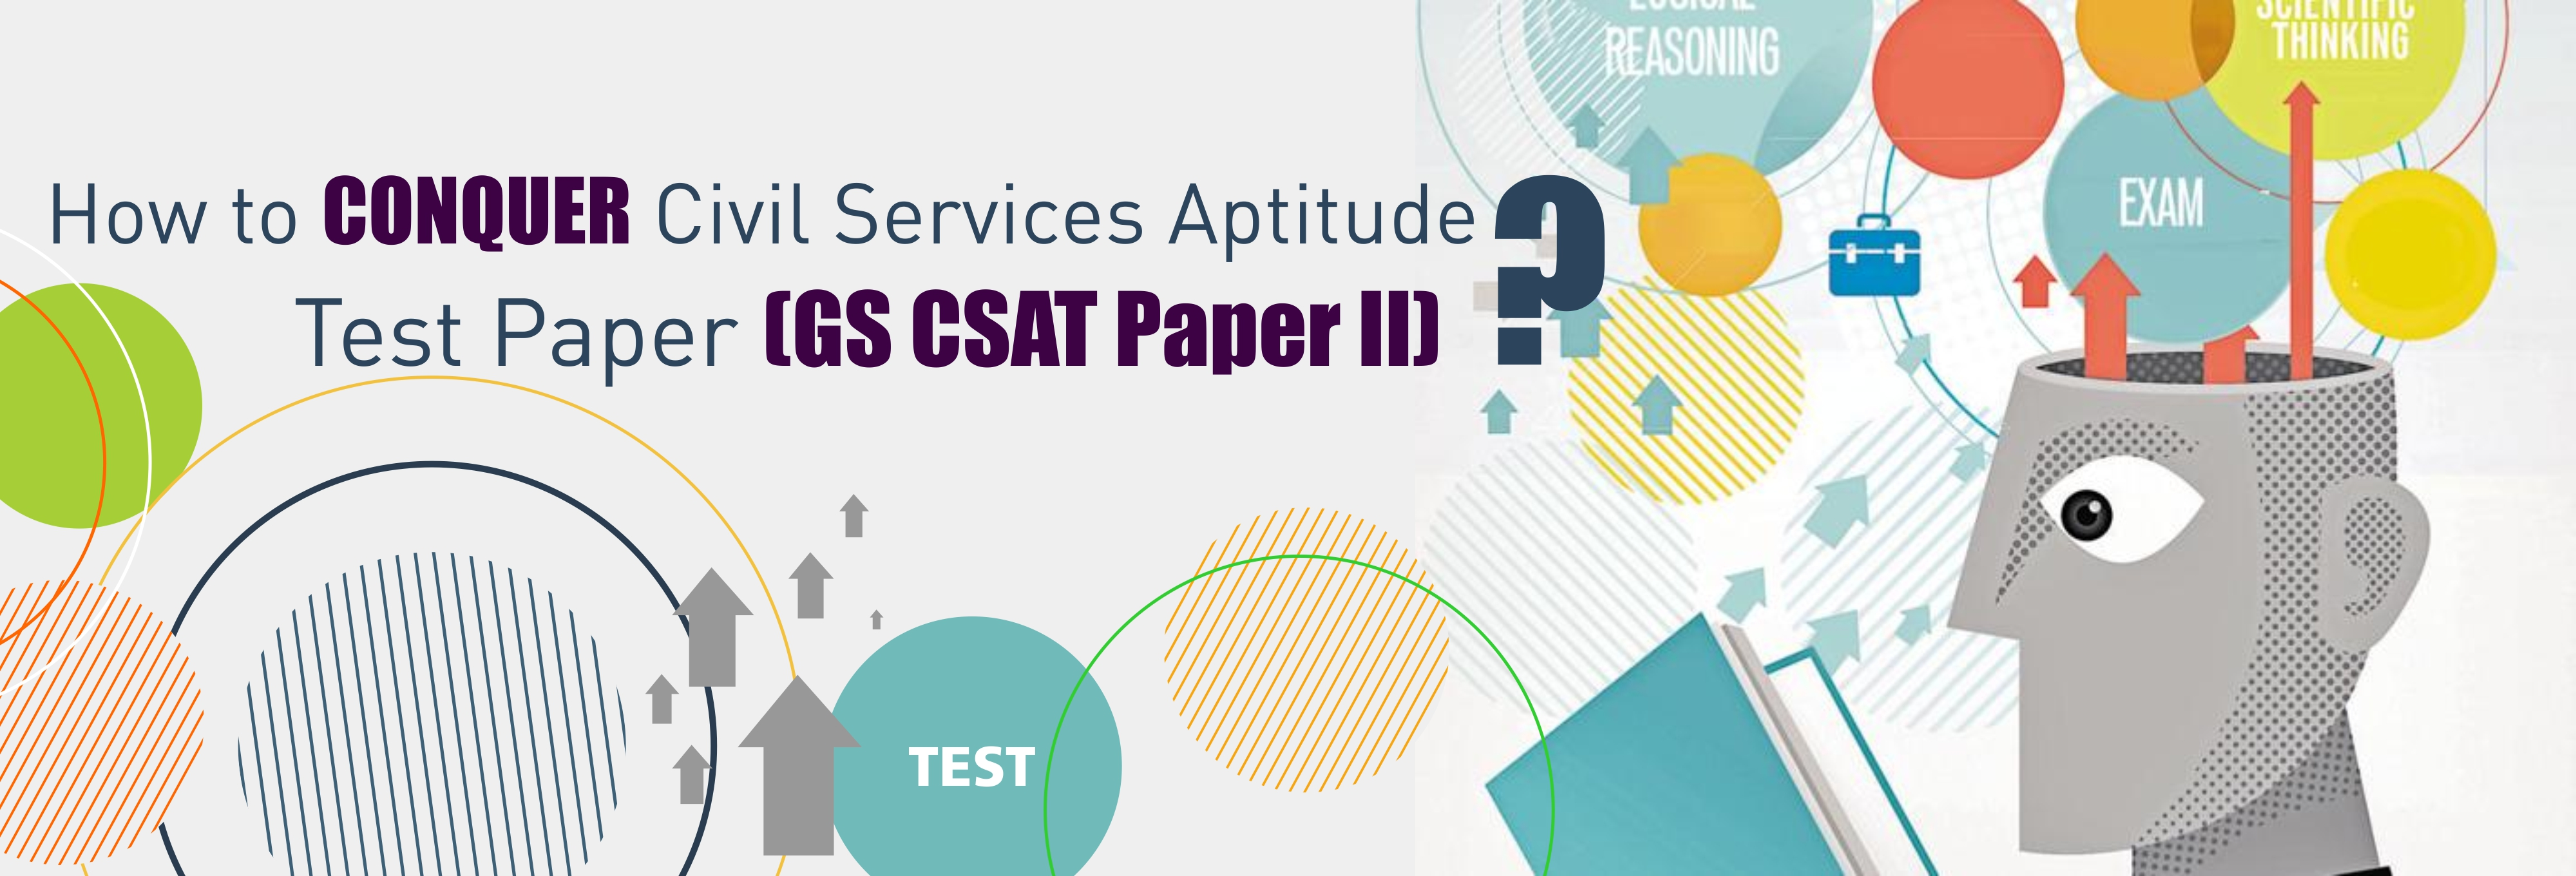 how to conquer civil services aptitude test paper gs csat paper how to conquer civil services aptitude test paper